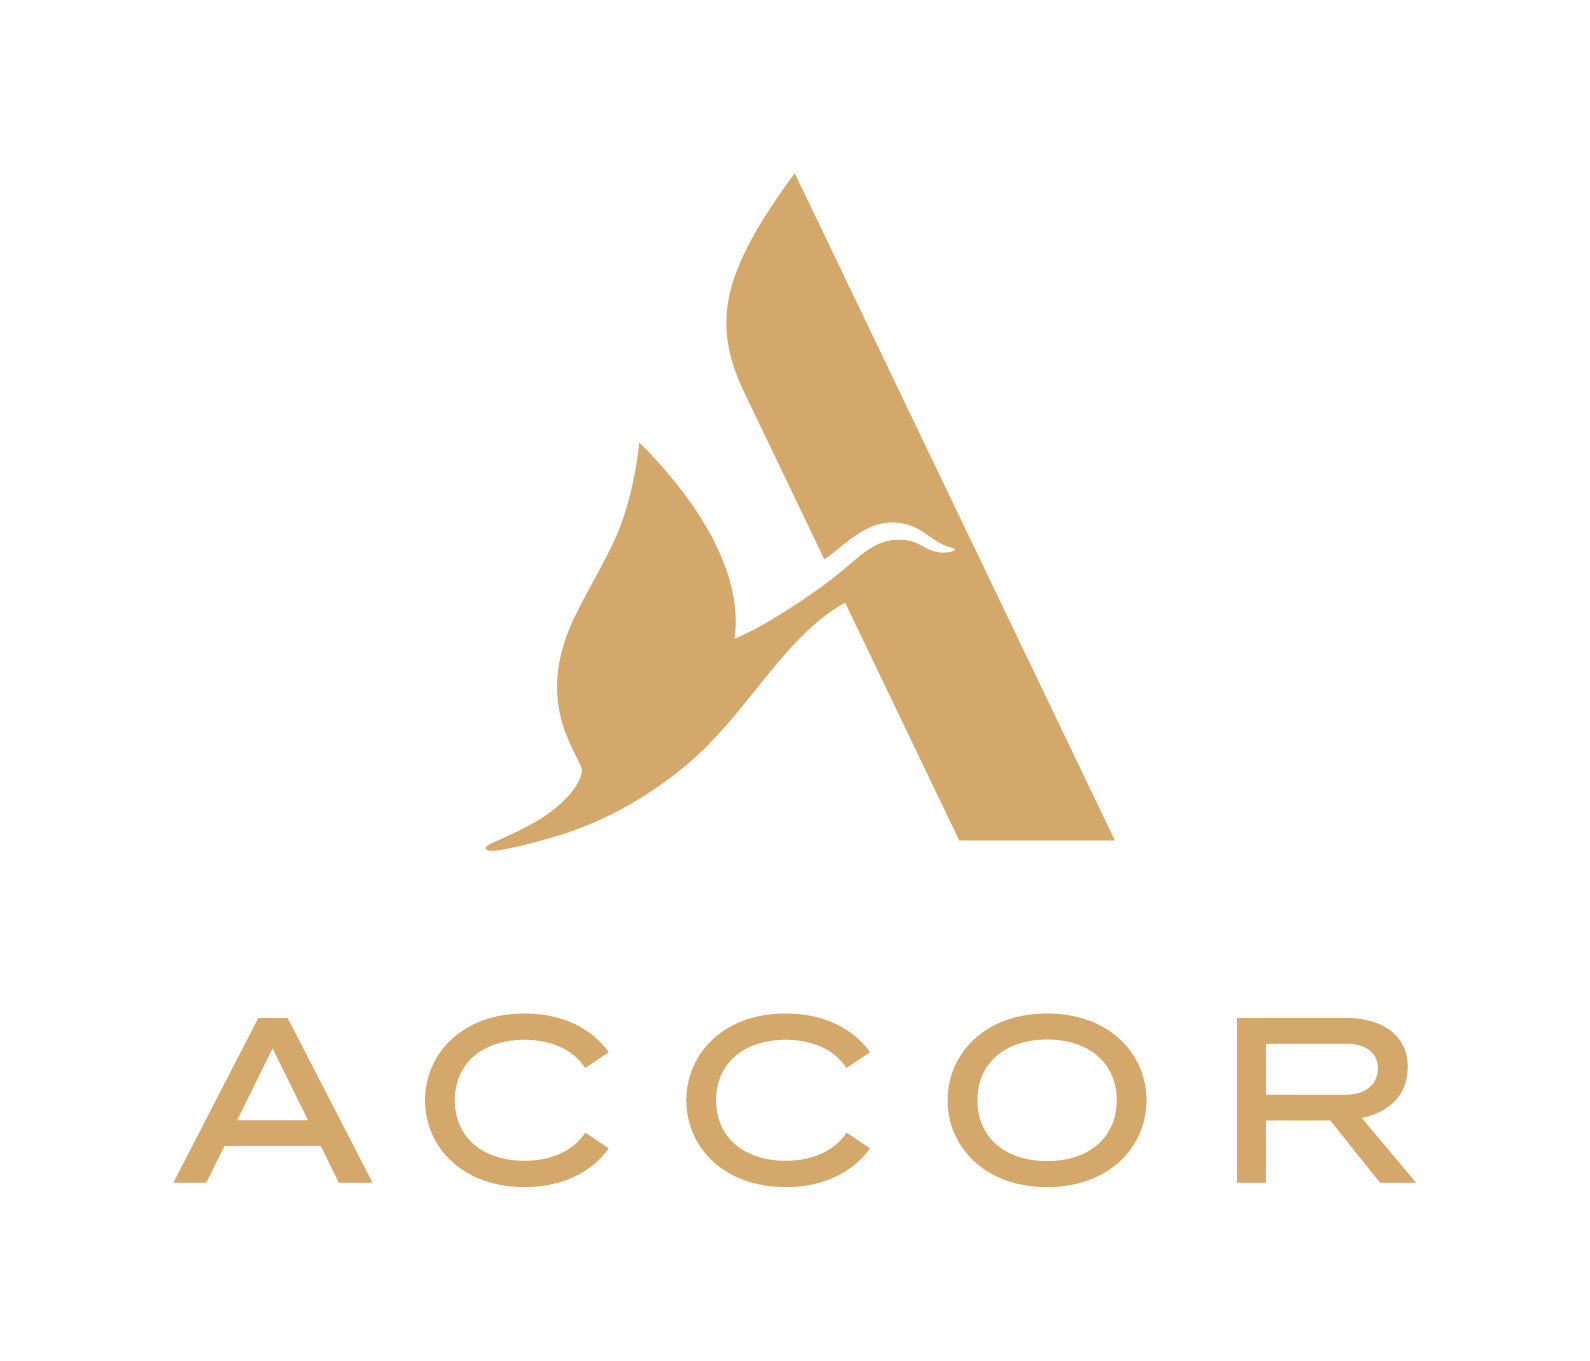 Accor Hotel - Feel welcome